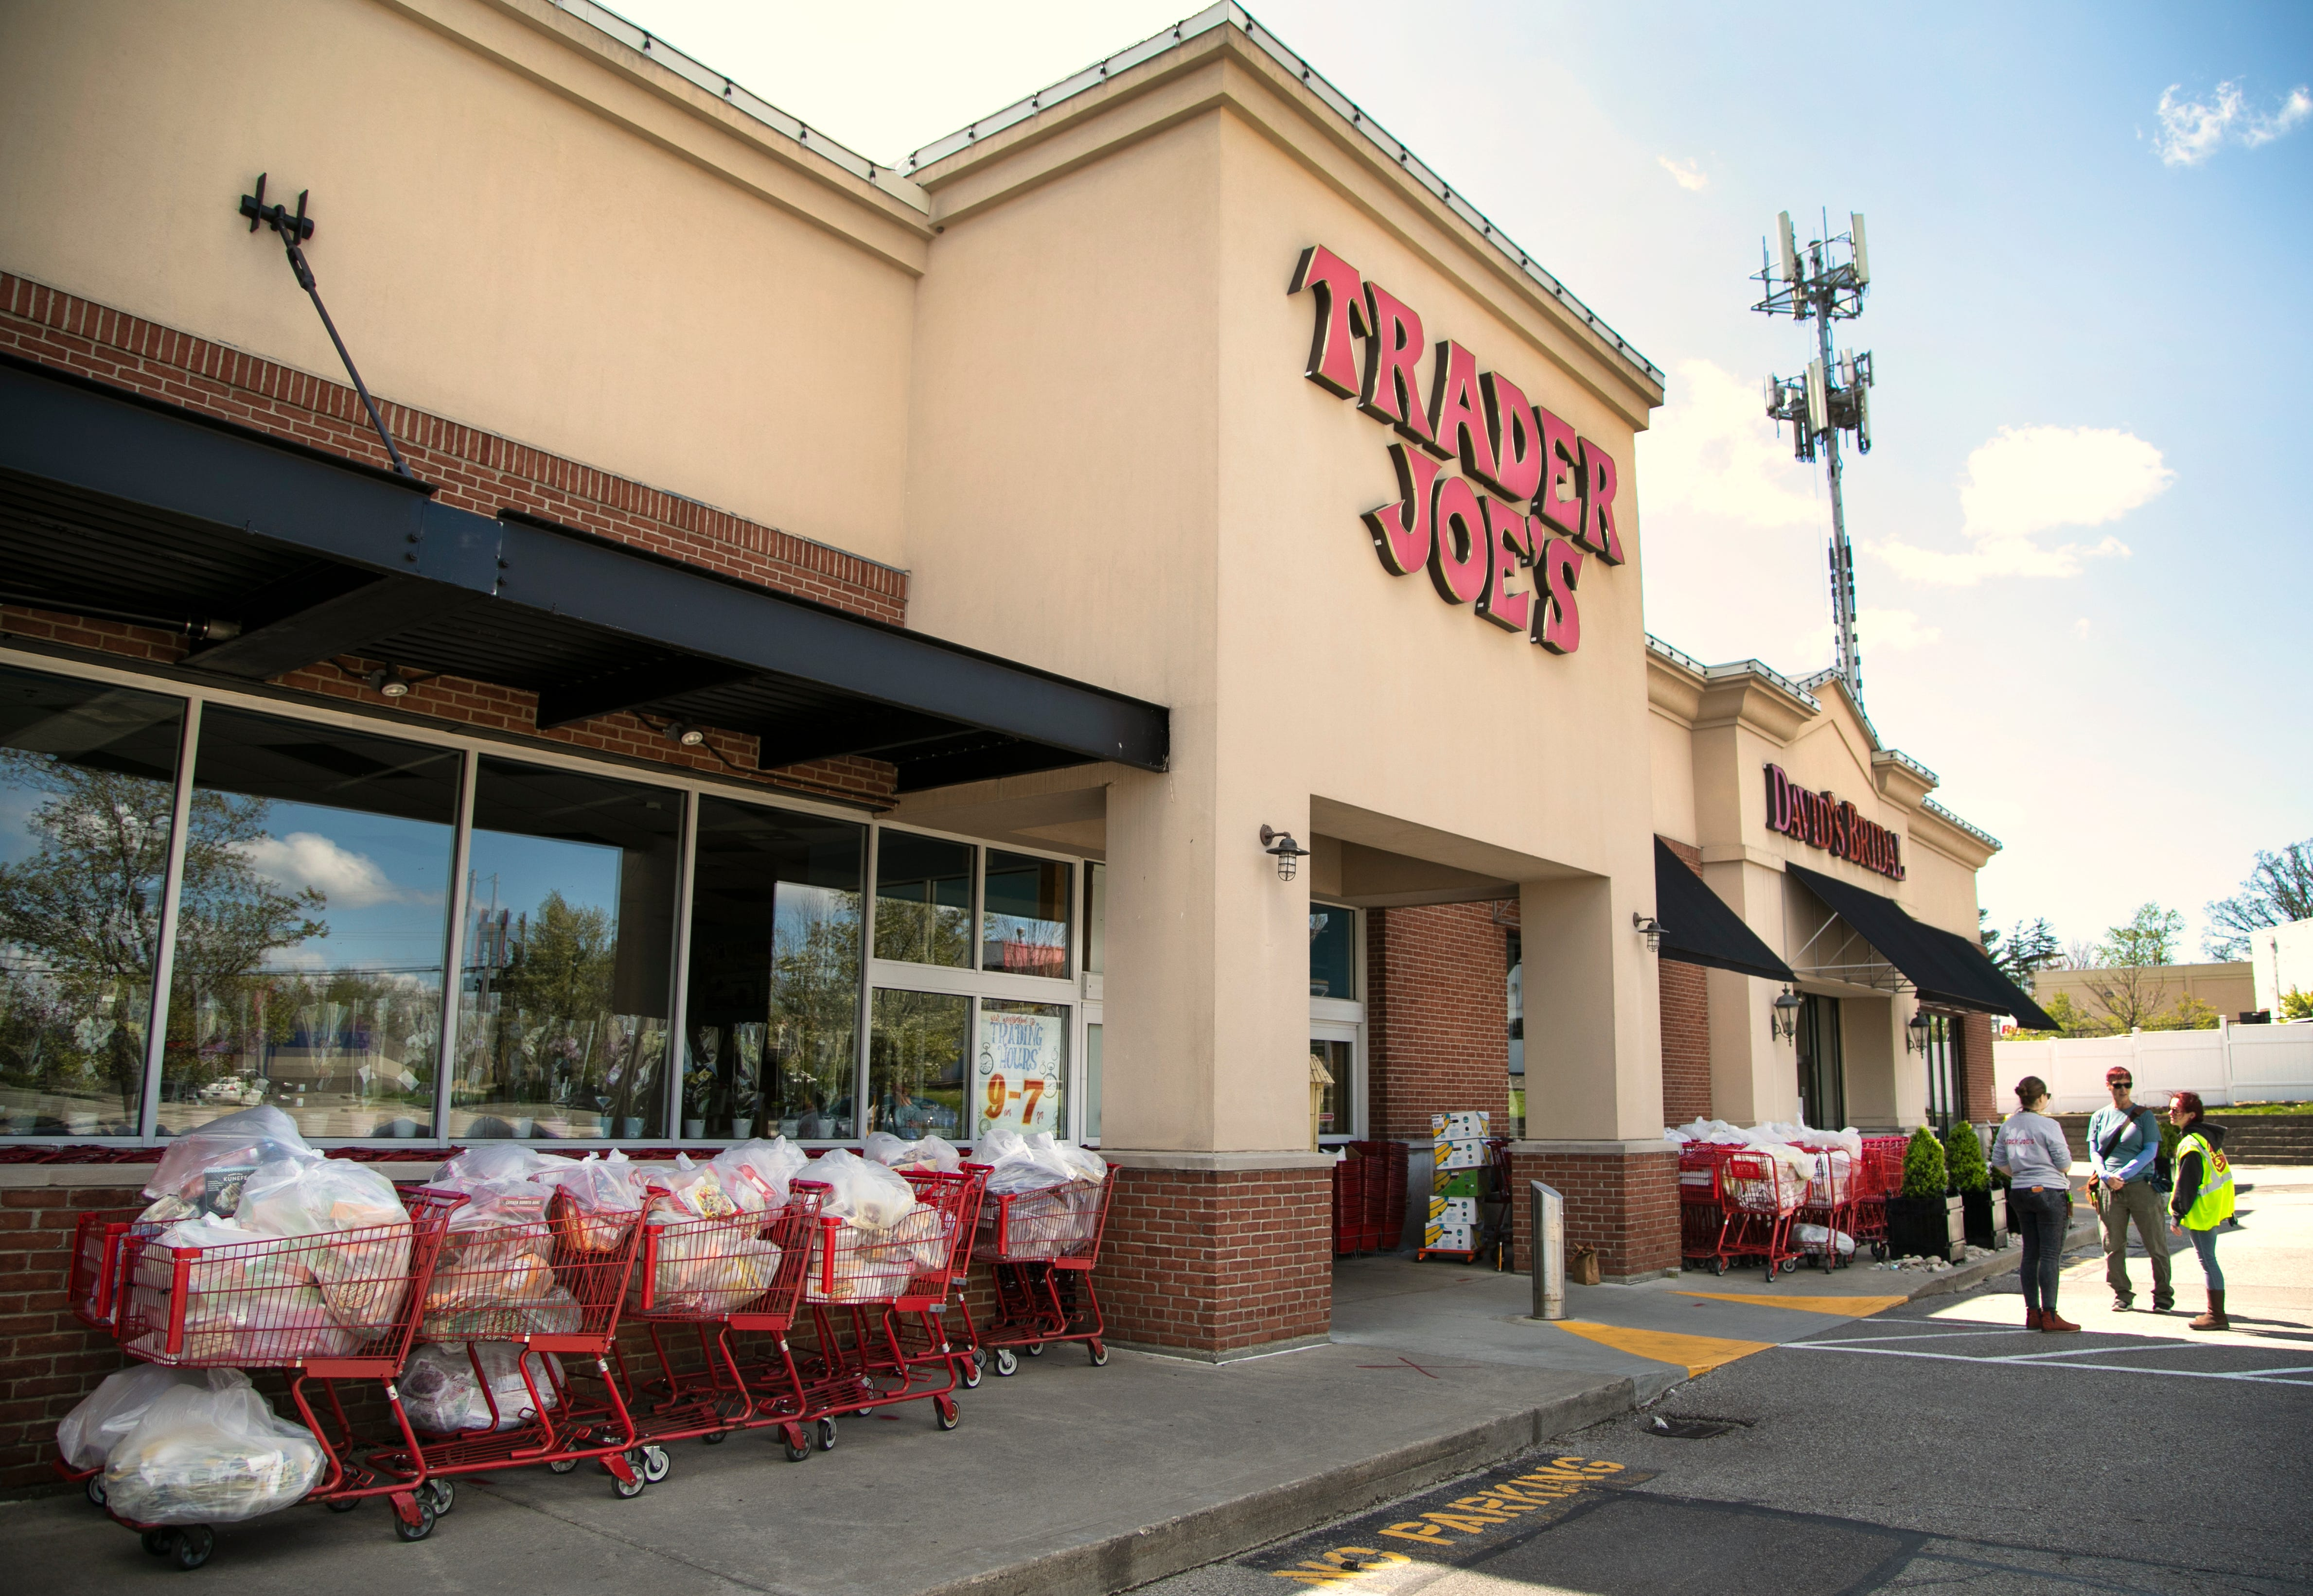 Power Outage Closes Trader Joe S Kenwood Food Donated To Charity